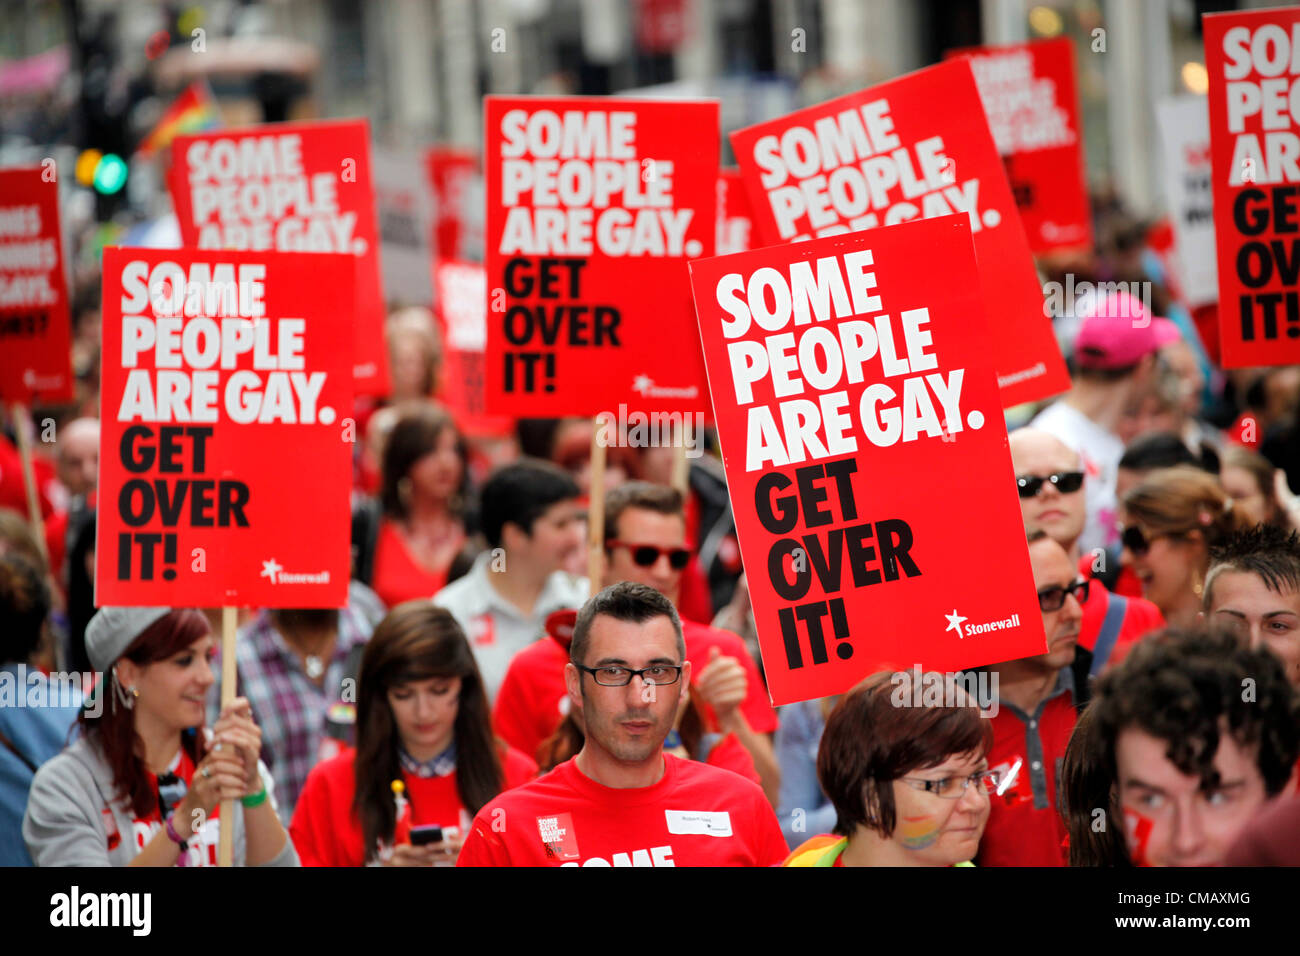 London, UK. 7th July 2012. Members of Stonewall marching in World Pride 2012, London, England - Stock Image